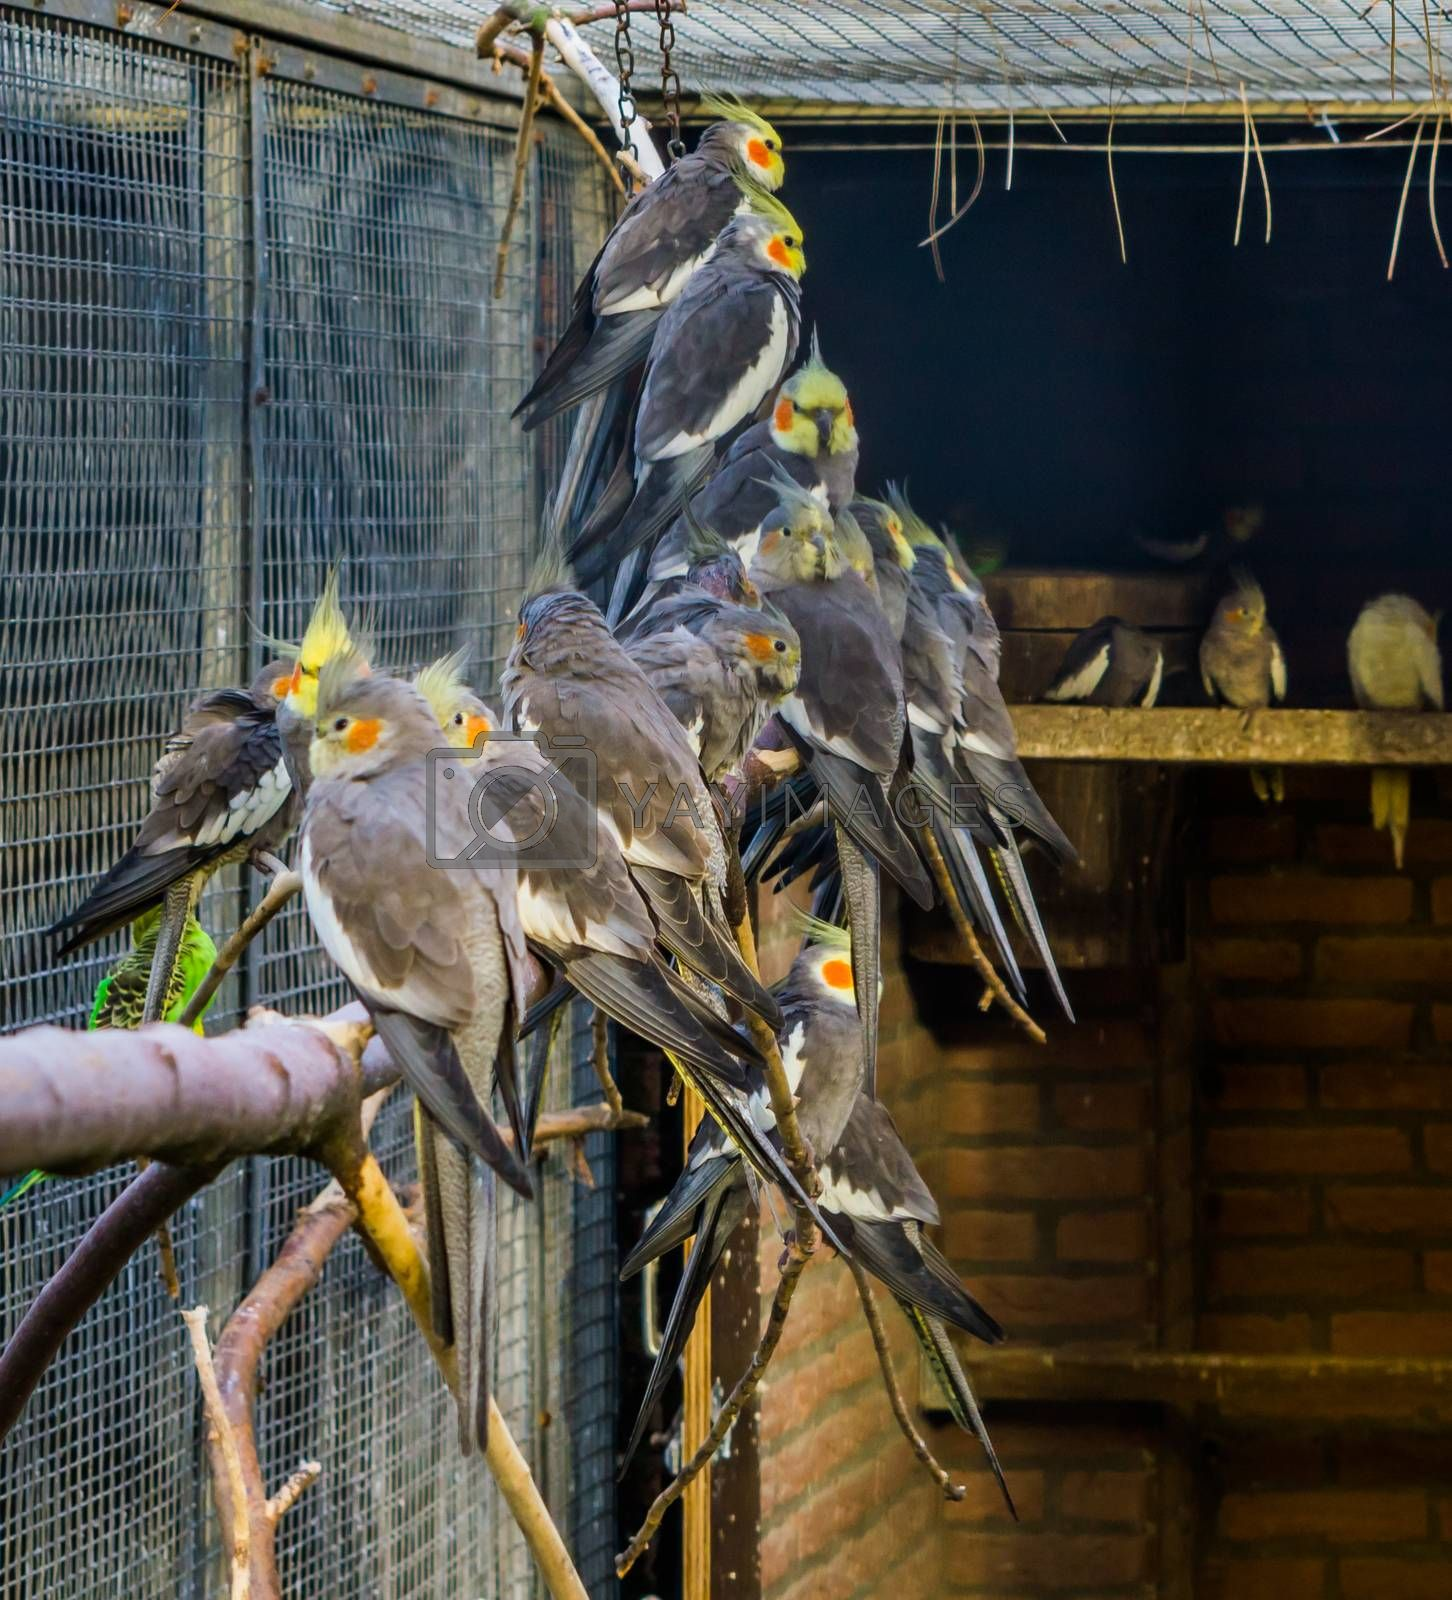 Aviculture, a aviary full of cockatiels, tropical crested birds from Australia, Popular pets